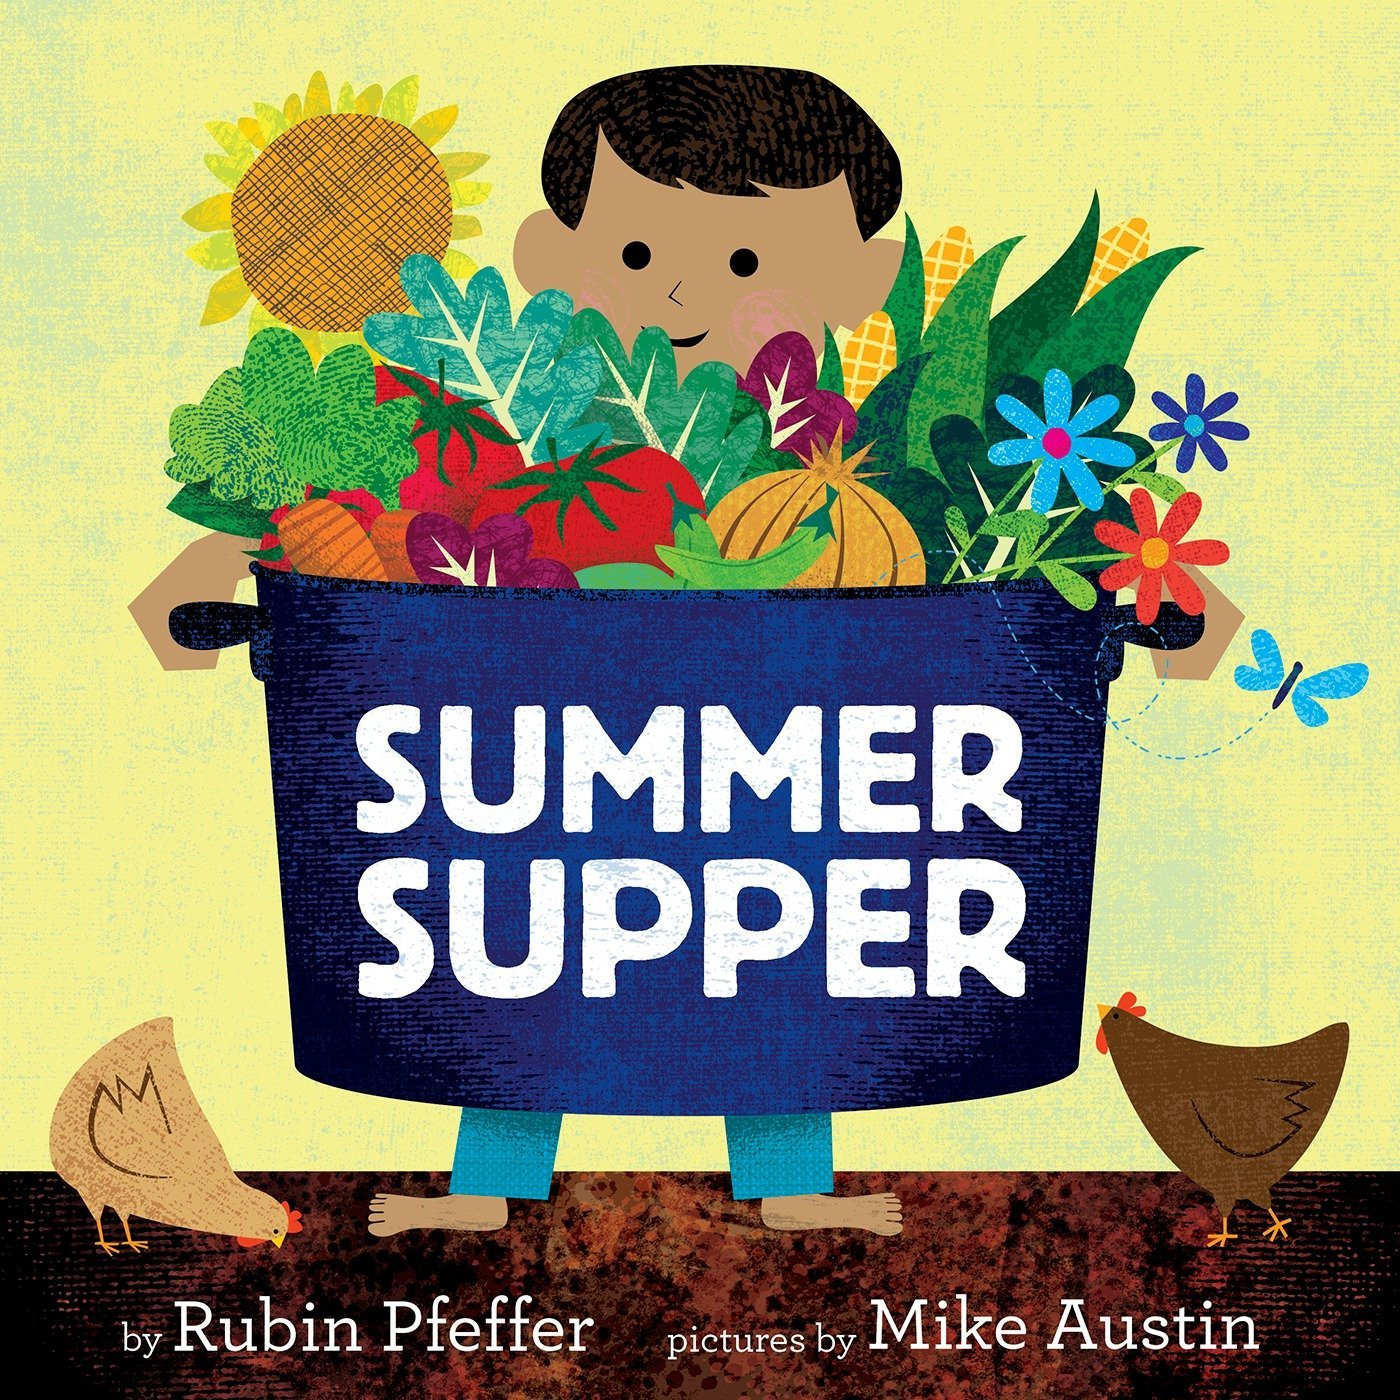 Front Cover of the Book Summer Supper by Rubin Pfeffer